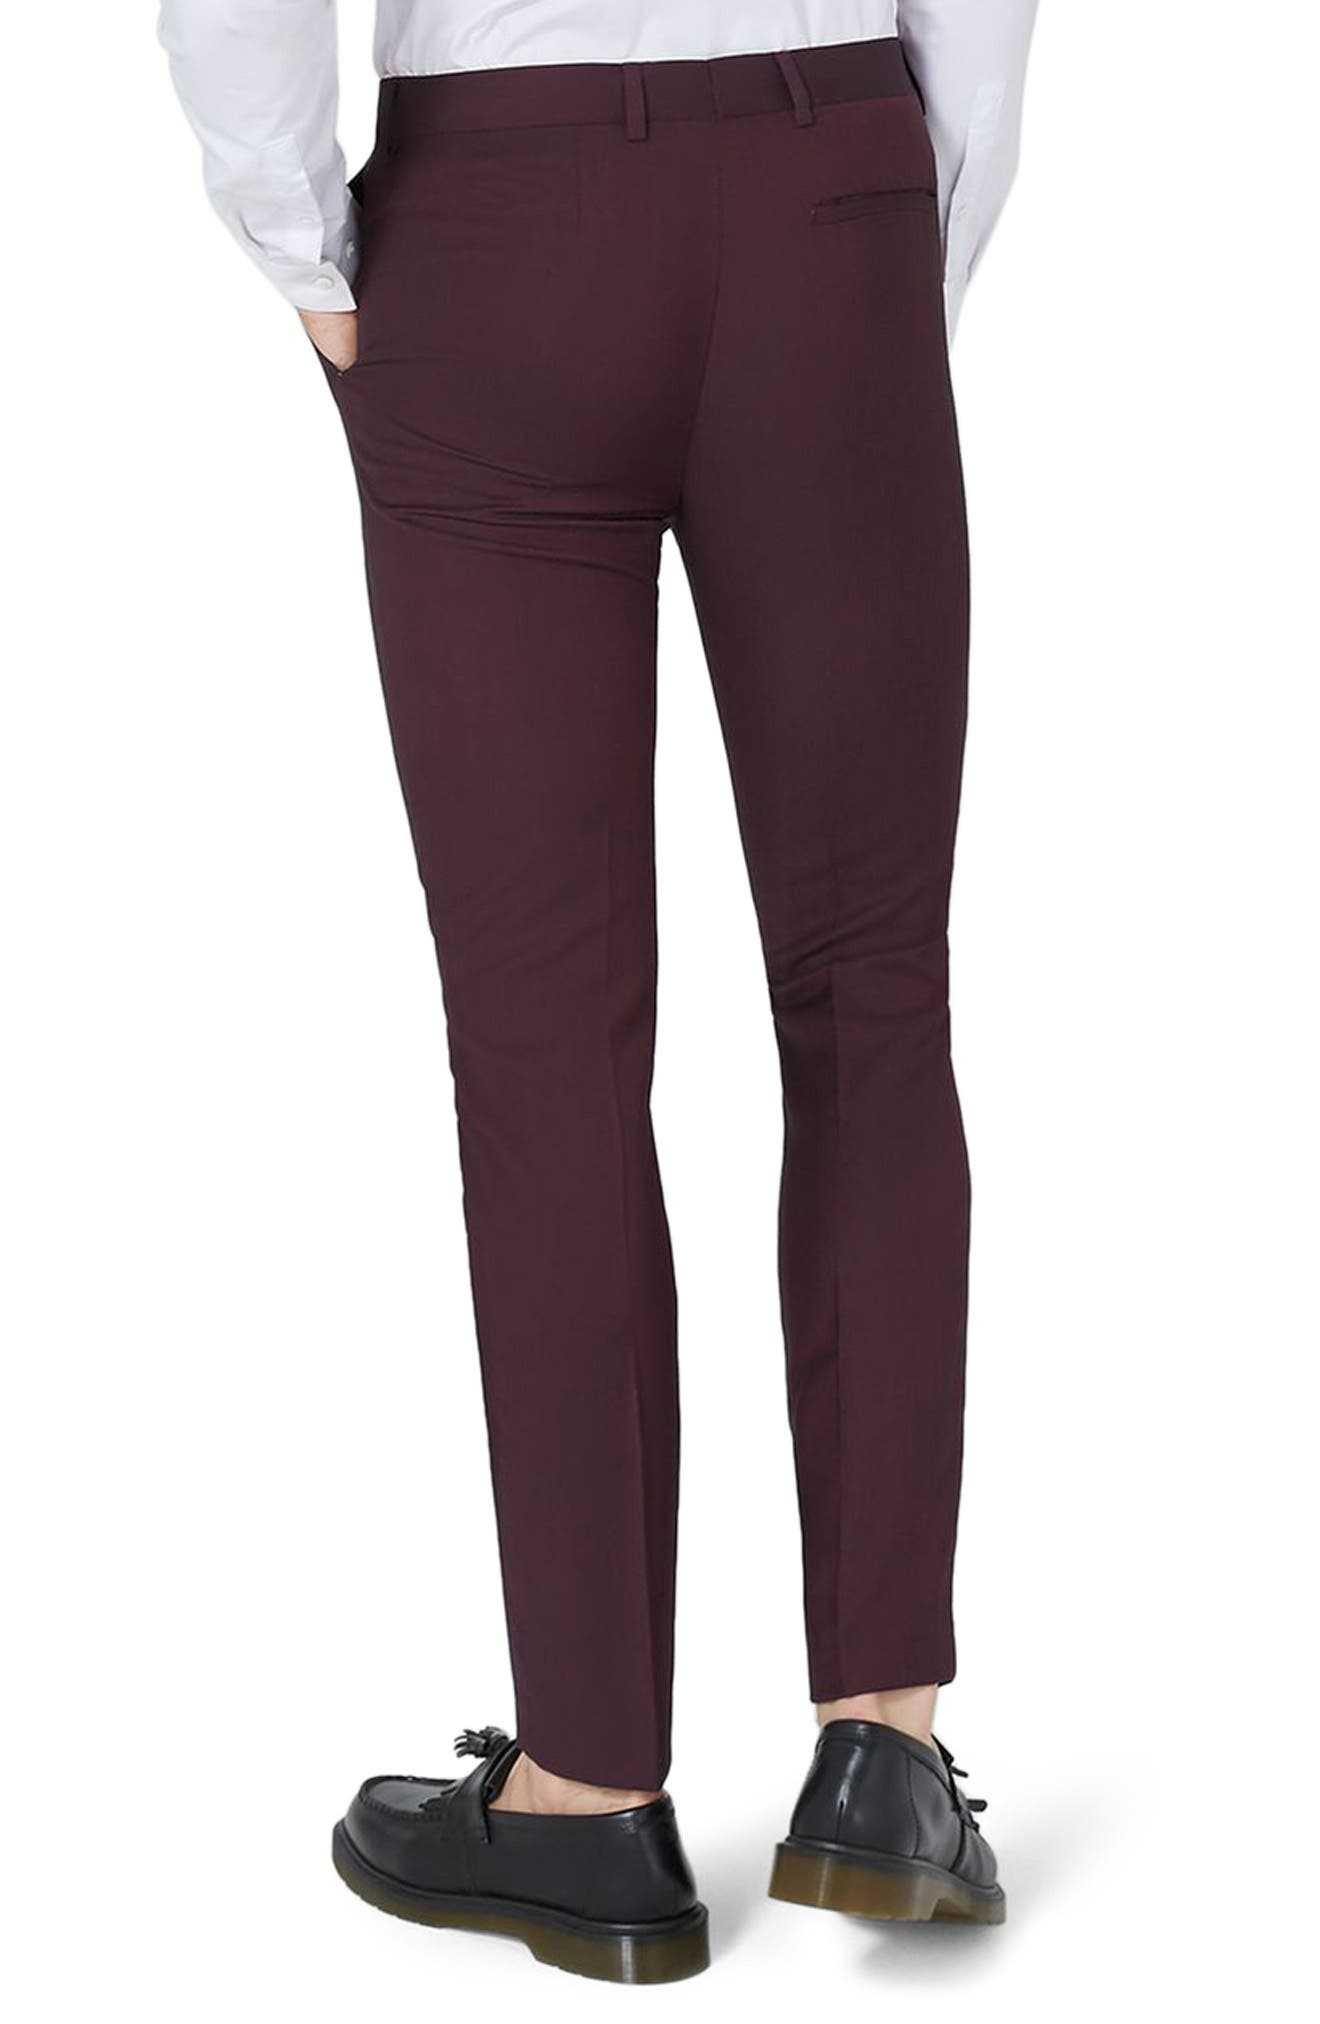 TOPMAN,                             Skinny Fit Plum Suit Trousers,                             Alternate thumbnail 3, color,                             500